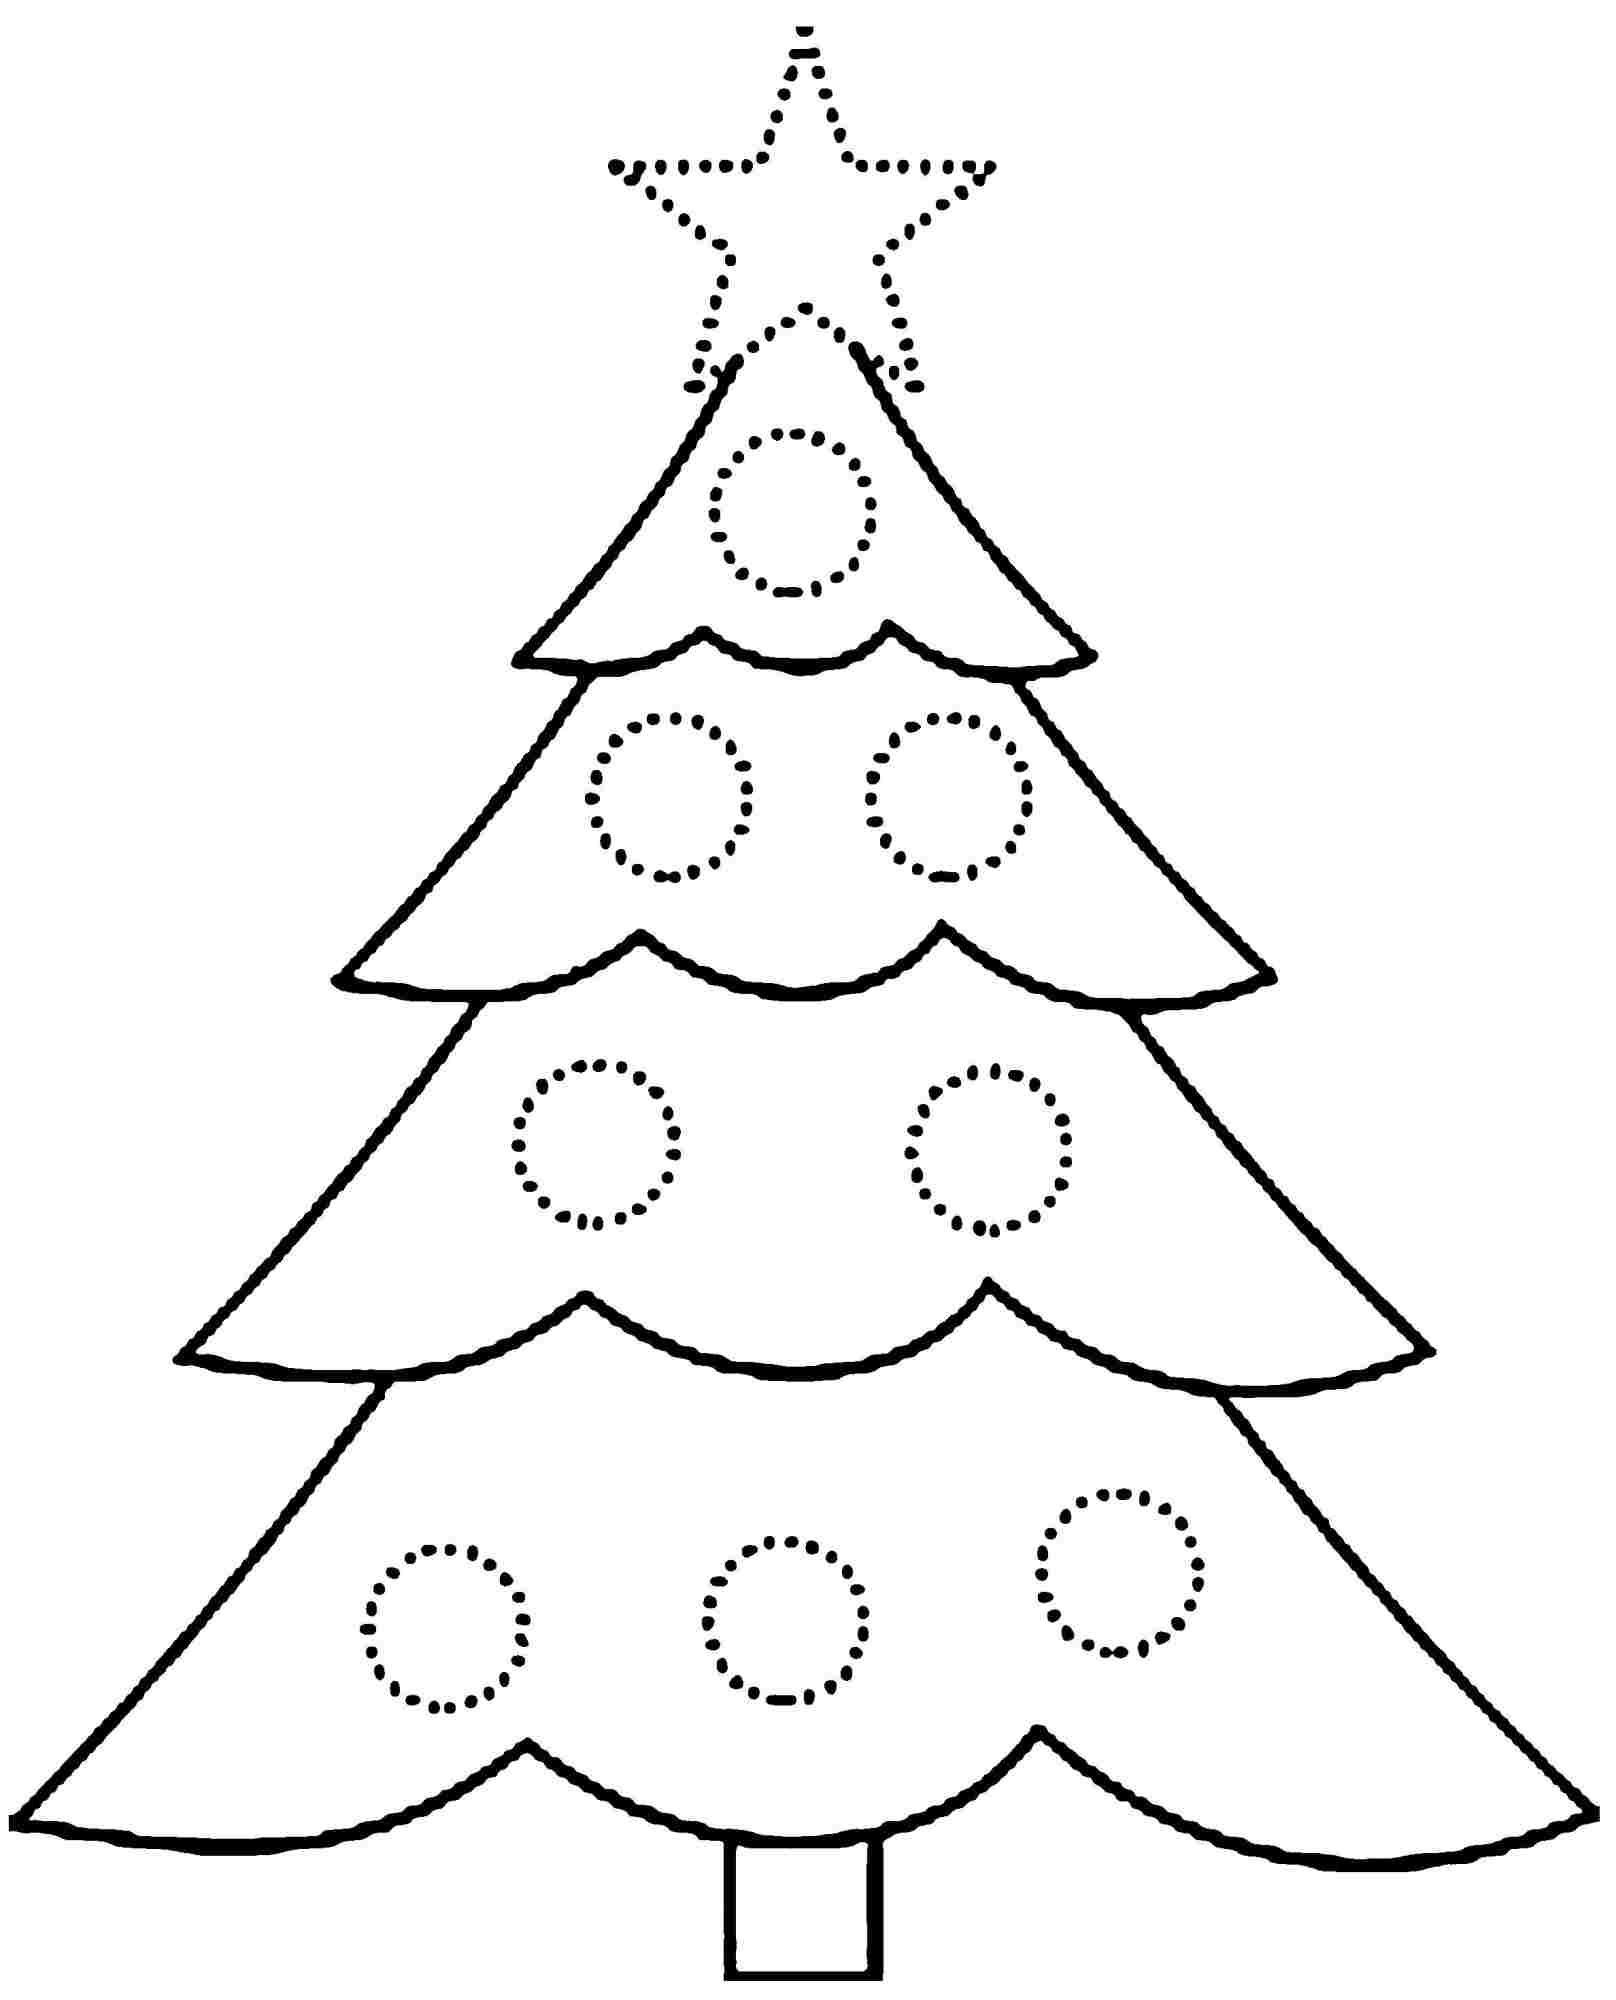 Printable Christmas Tree Coloring Pages Sheets Free For